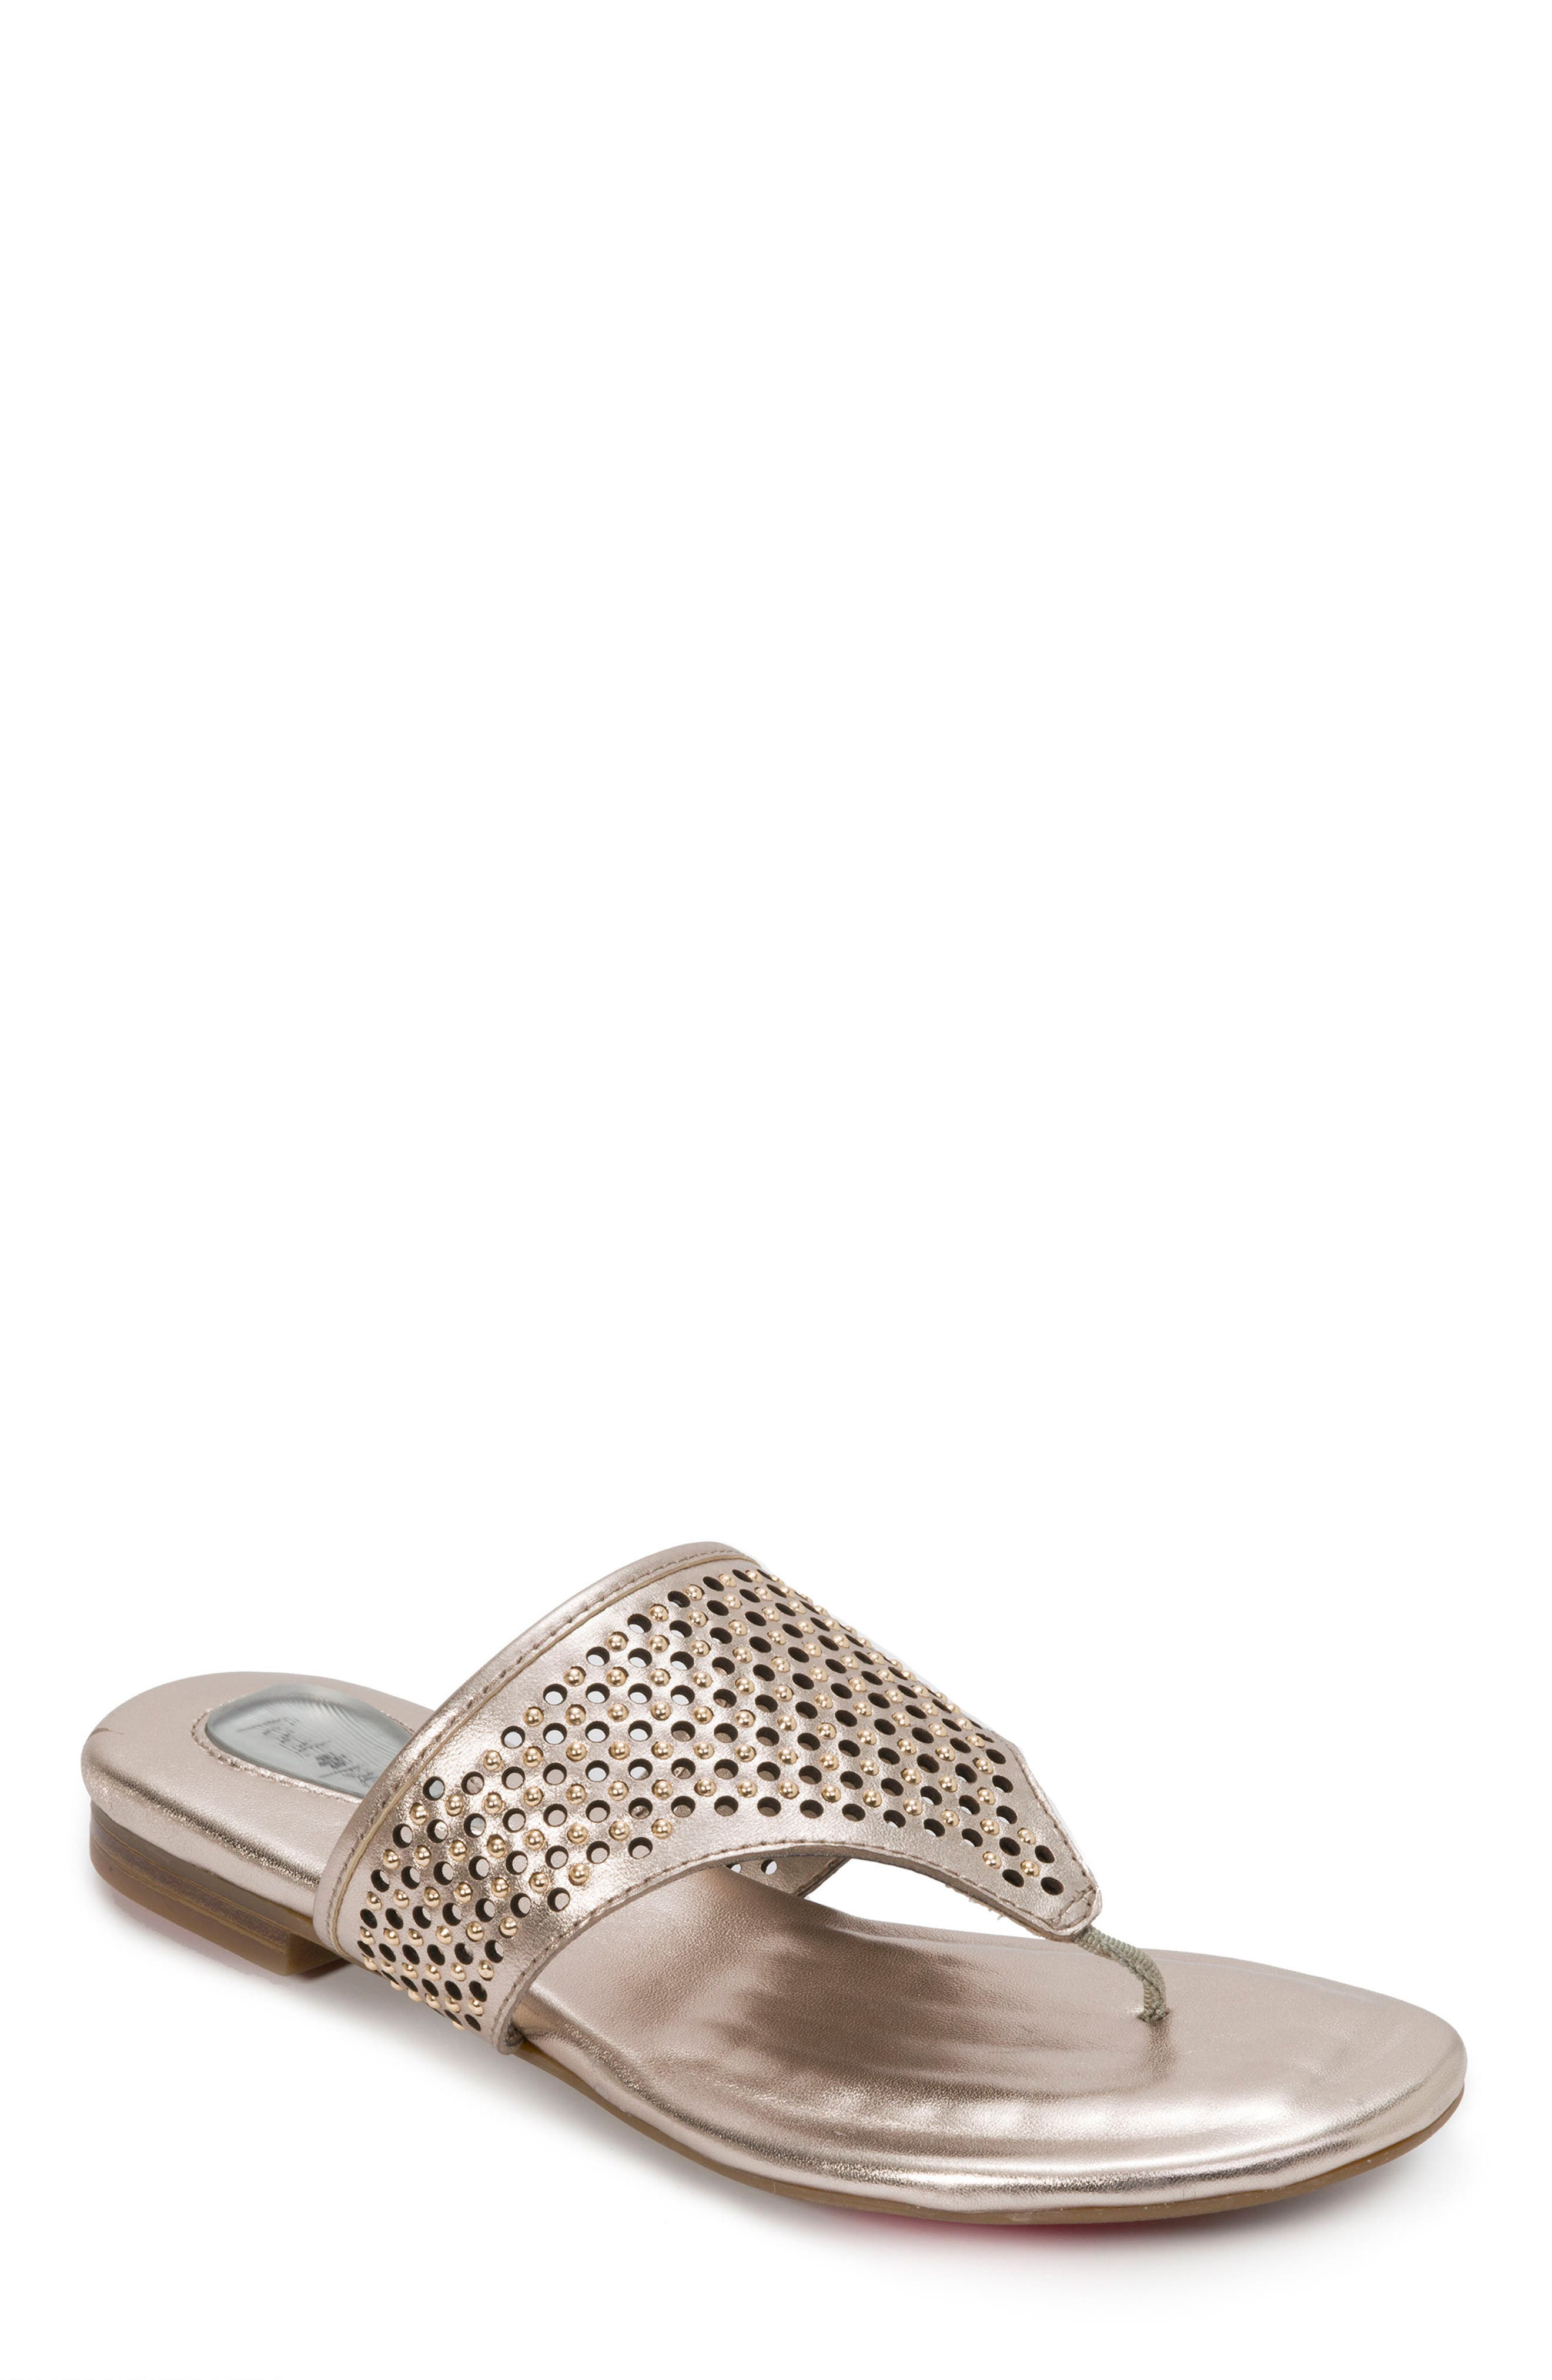 Evie Sandal,                         Main,                         color, Champagne Leather